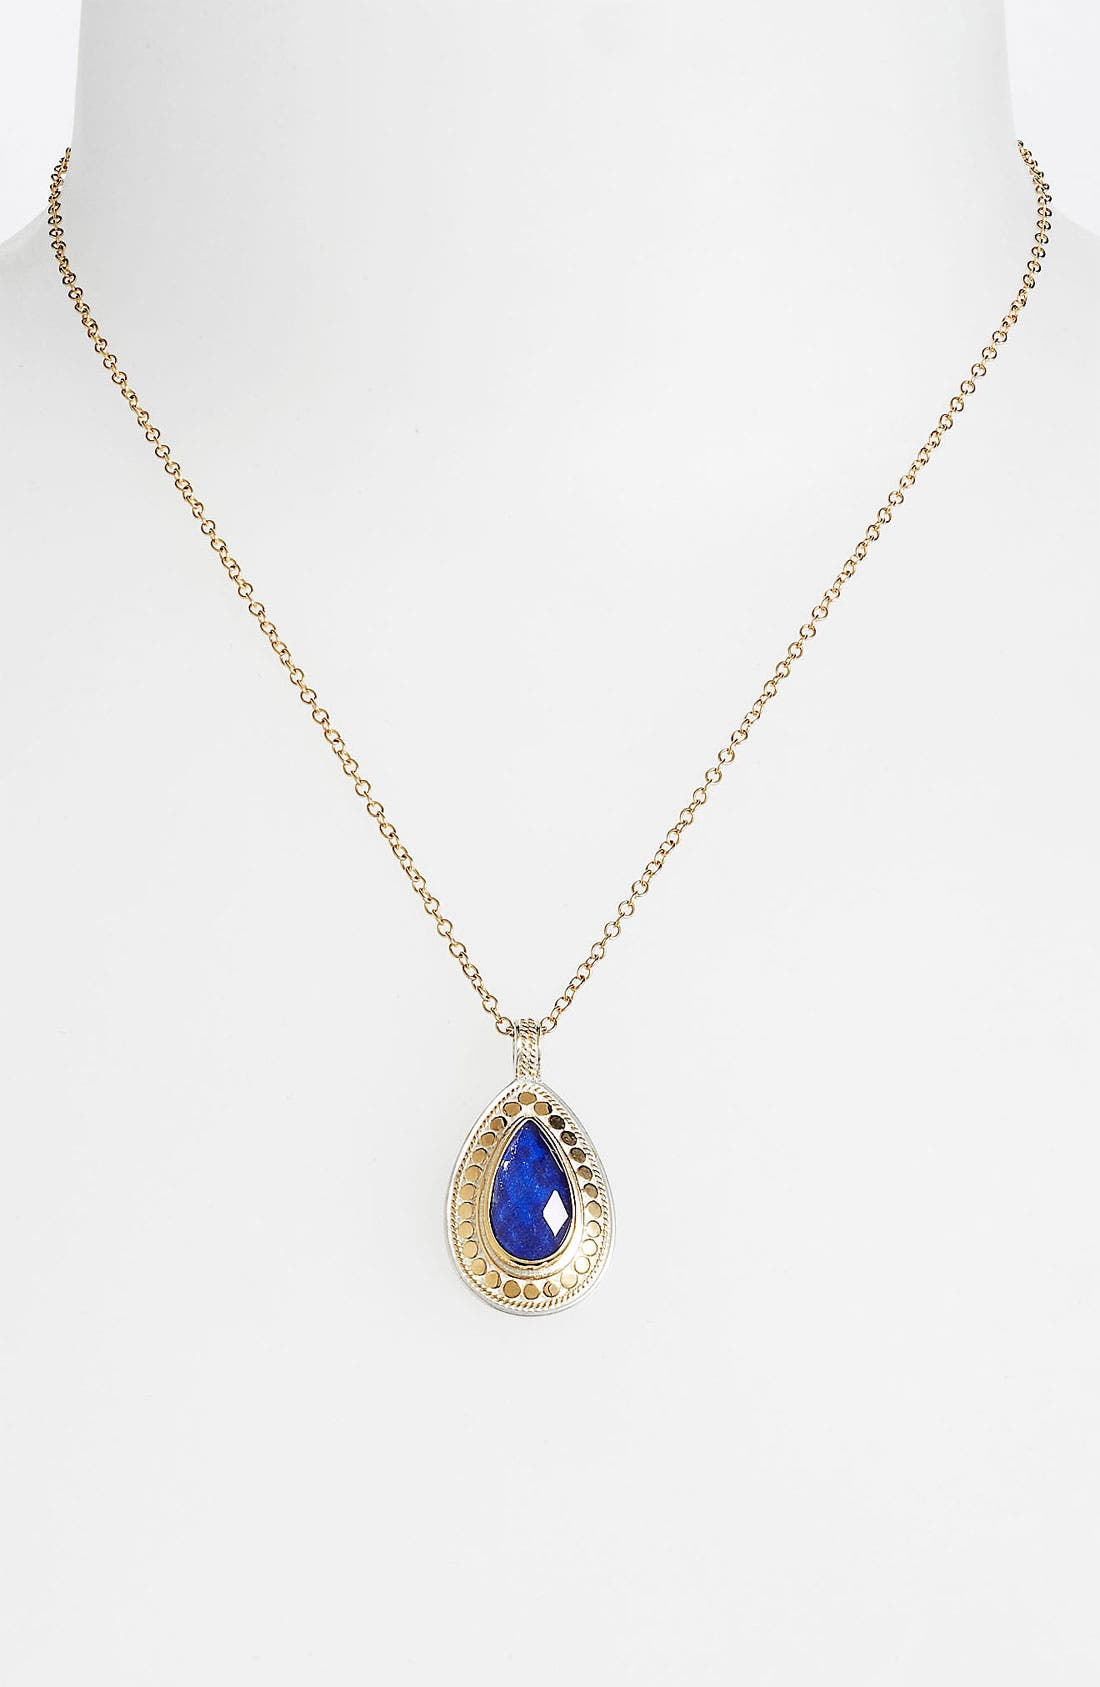 Alternate Image 1 Selected - Anna Beck 'Gili' Wire Rimmed Teardrop Pendant Necklace (Nordstrom Exclusive)